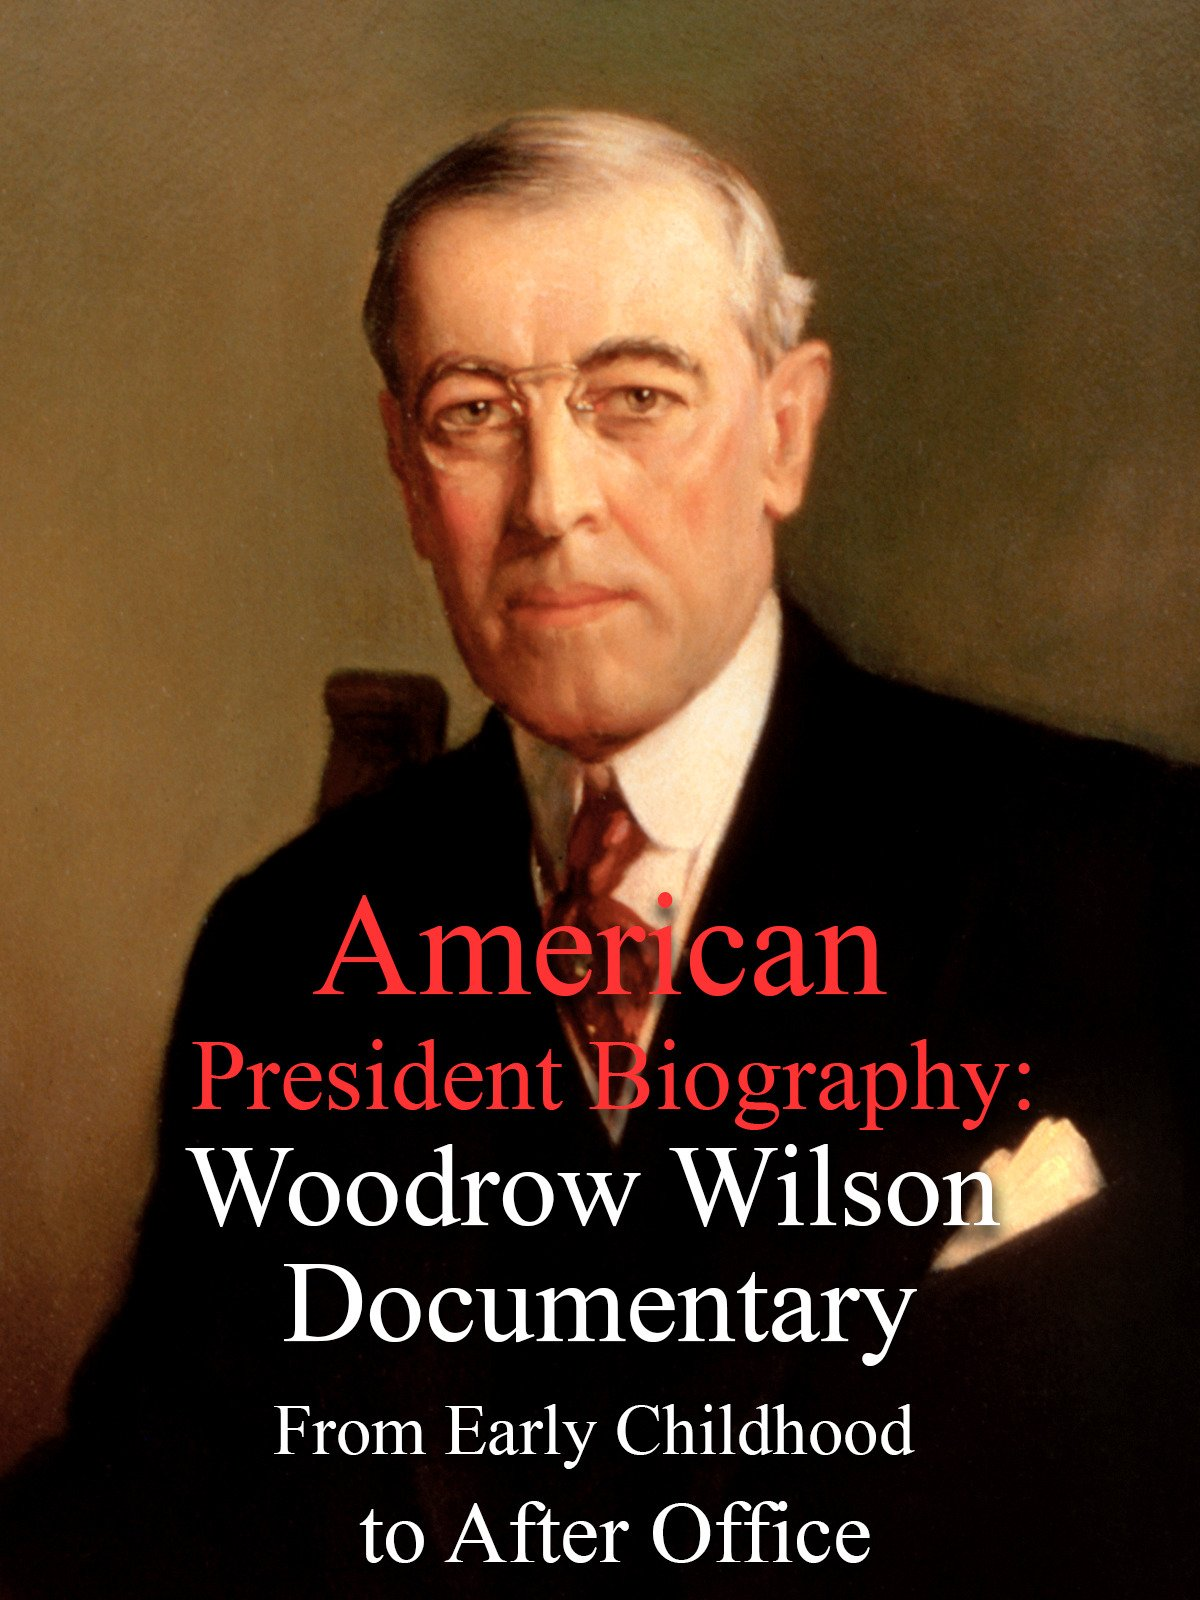 American President Biography: Woodrow Wilson Documentary From Early Childhood to After Office